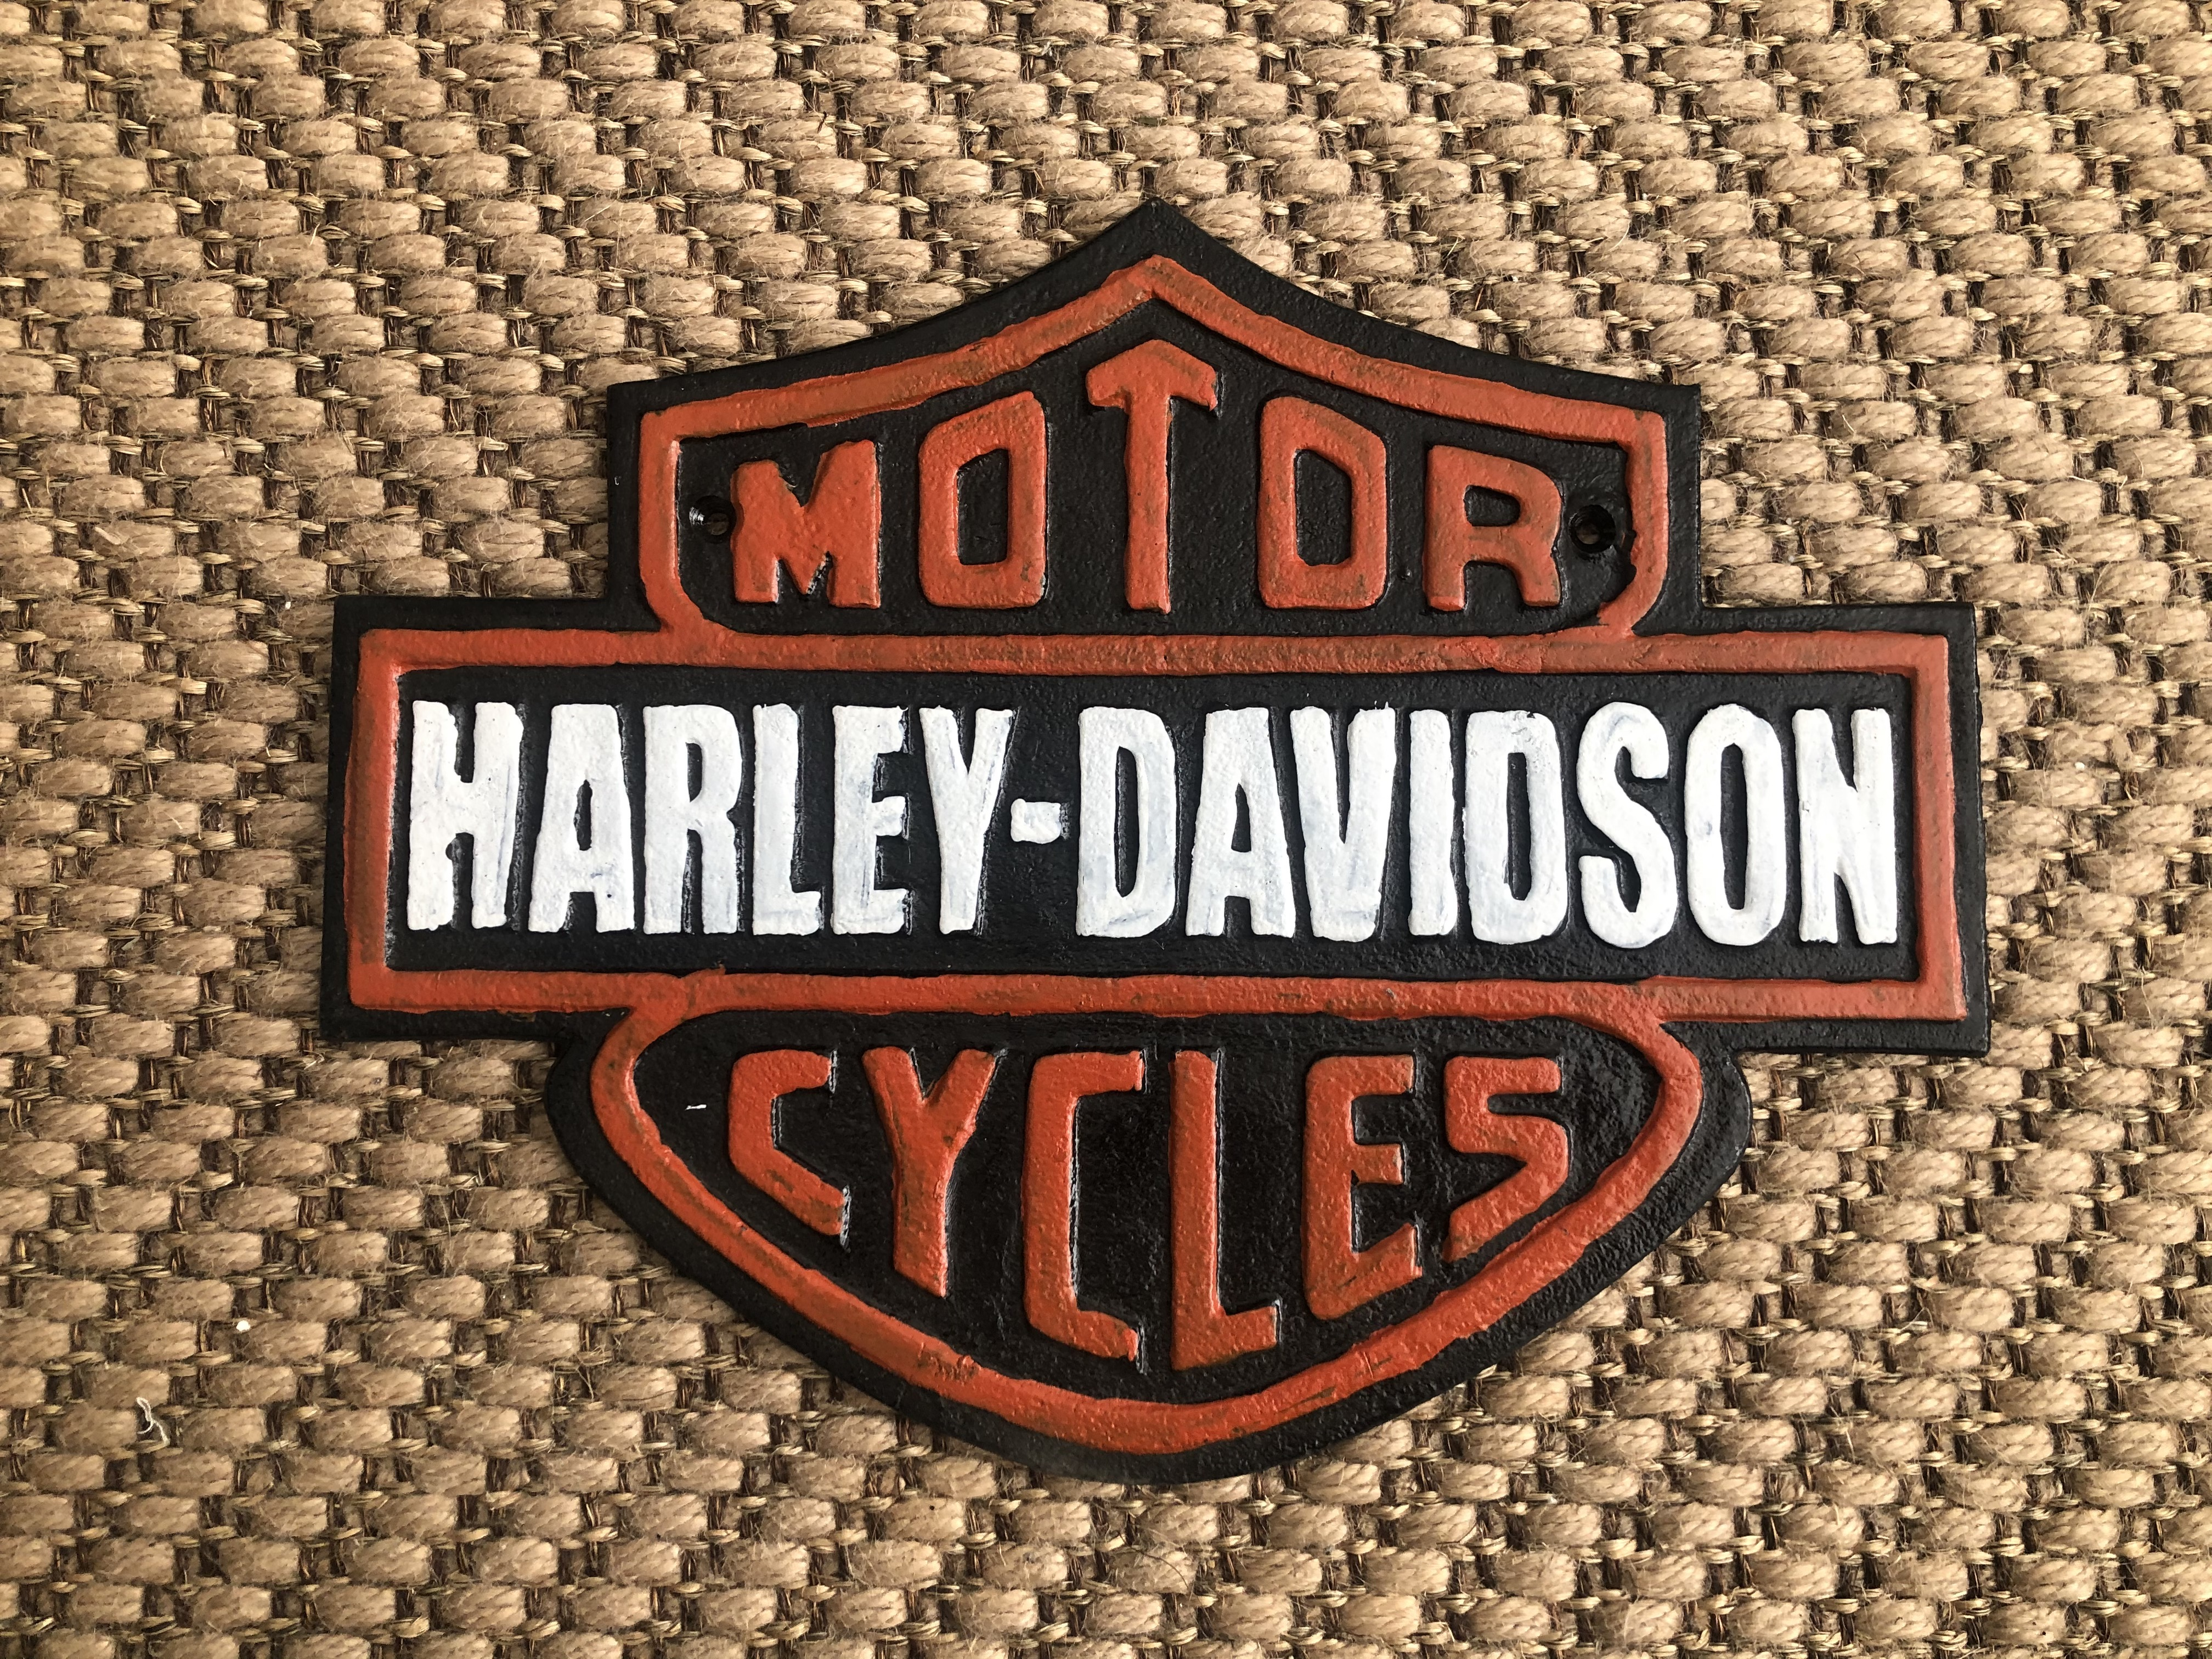 Lot 38 - Cast Iron Harley Davidson Motorcycle Wall Plaque